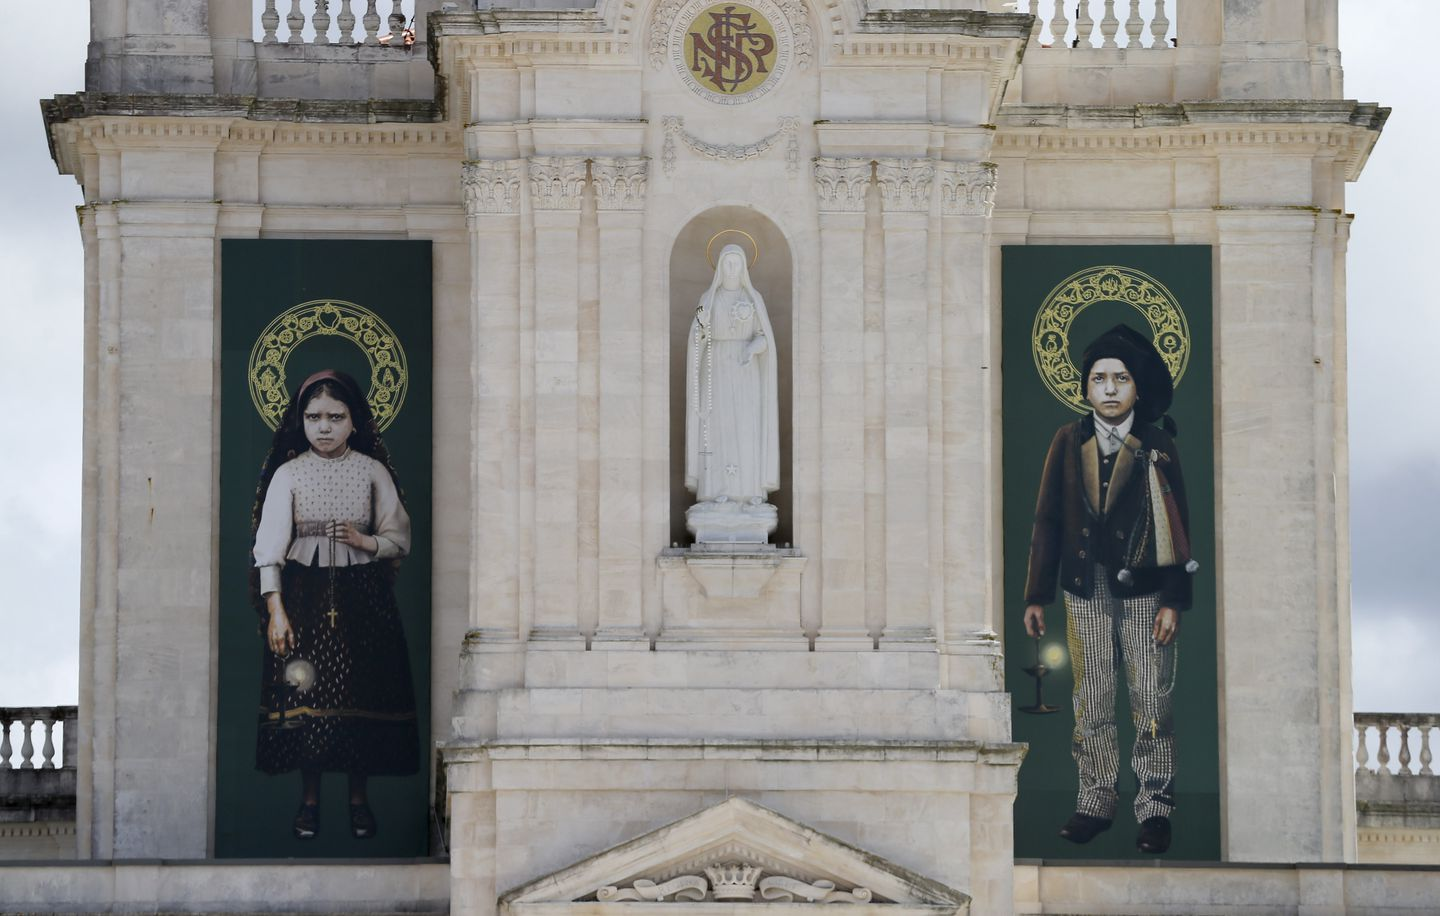 The pictures of Jacinta, left, and Francisco Marto, hang on the facade of the Sanctuary of Our Lady of Fatima.